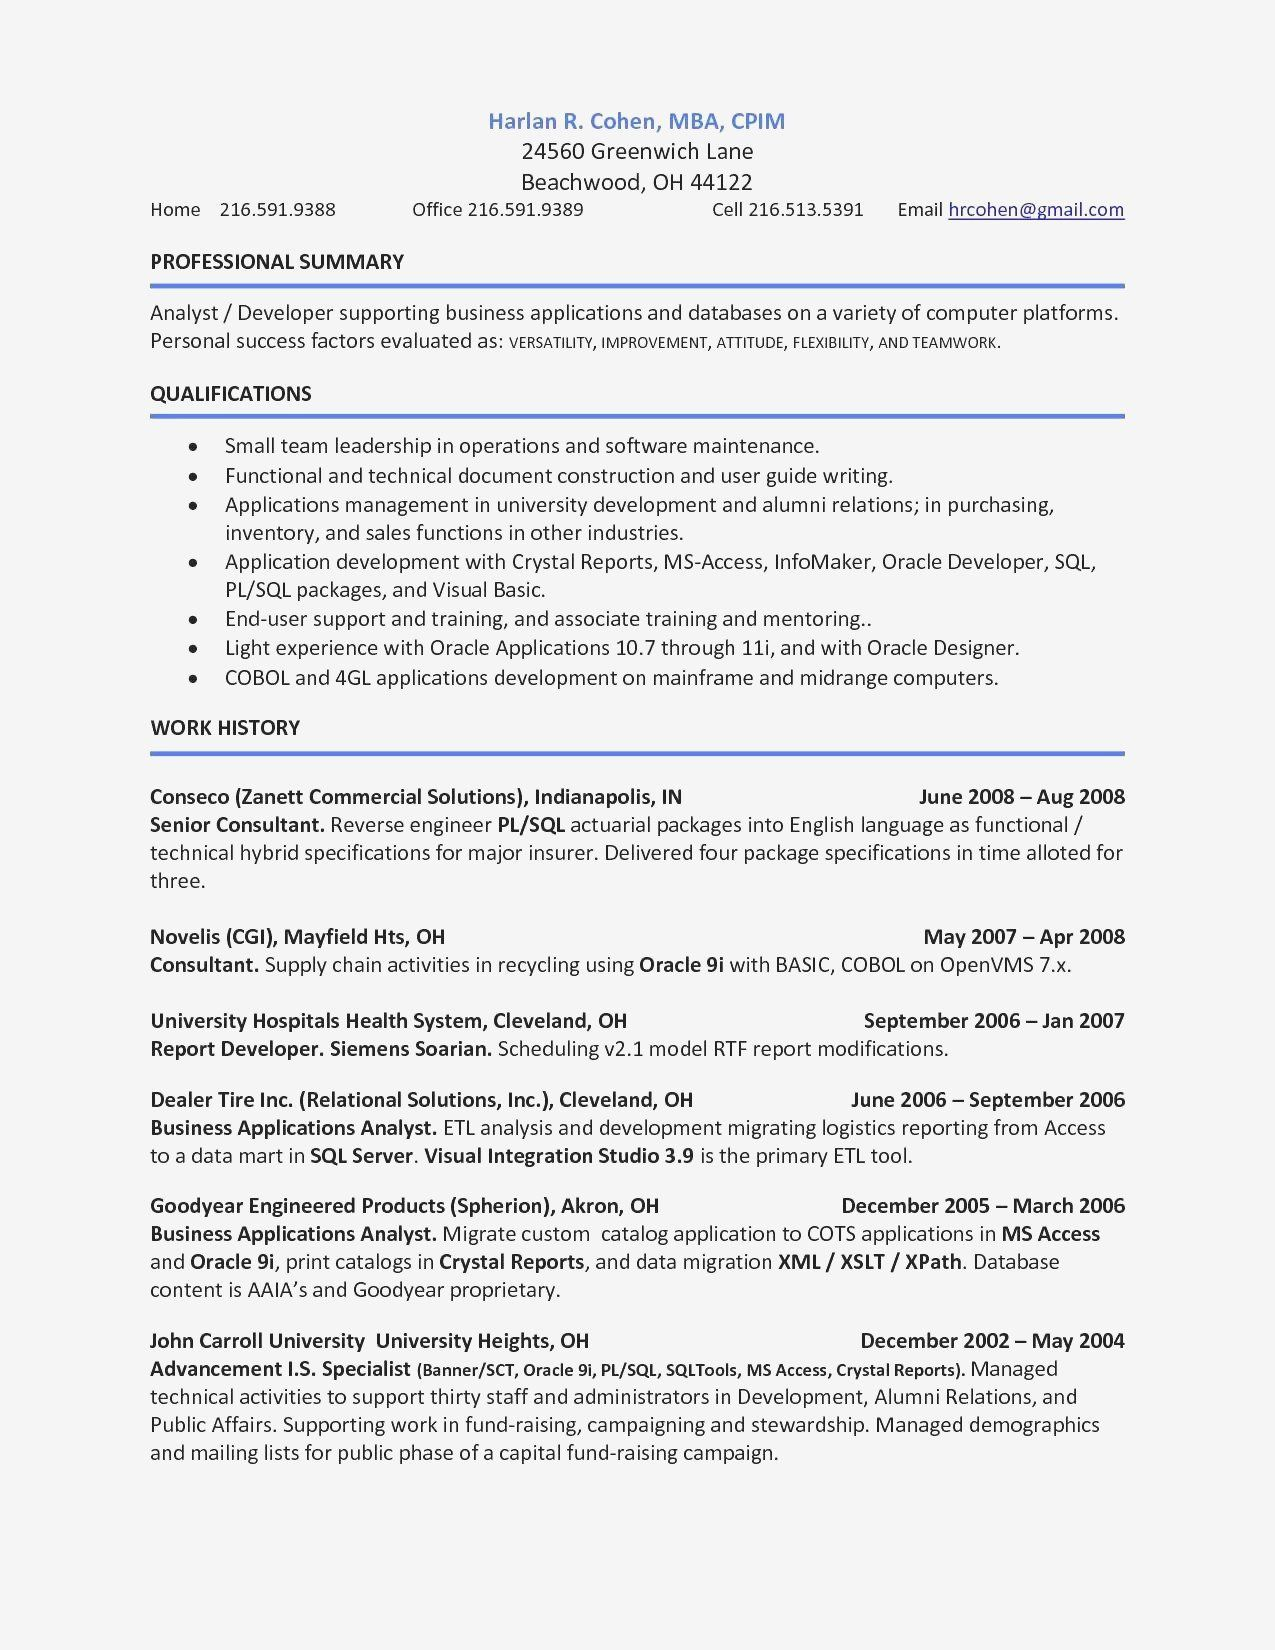 Accounting Resume Examples 2017 Lovely Accountants Resume